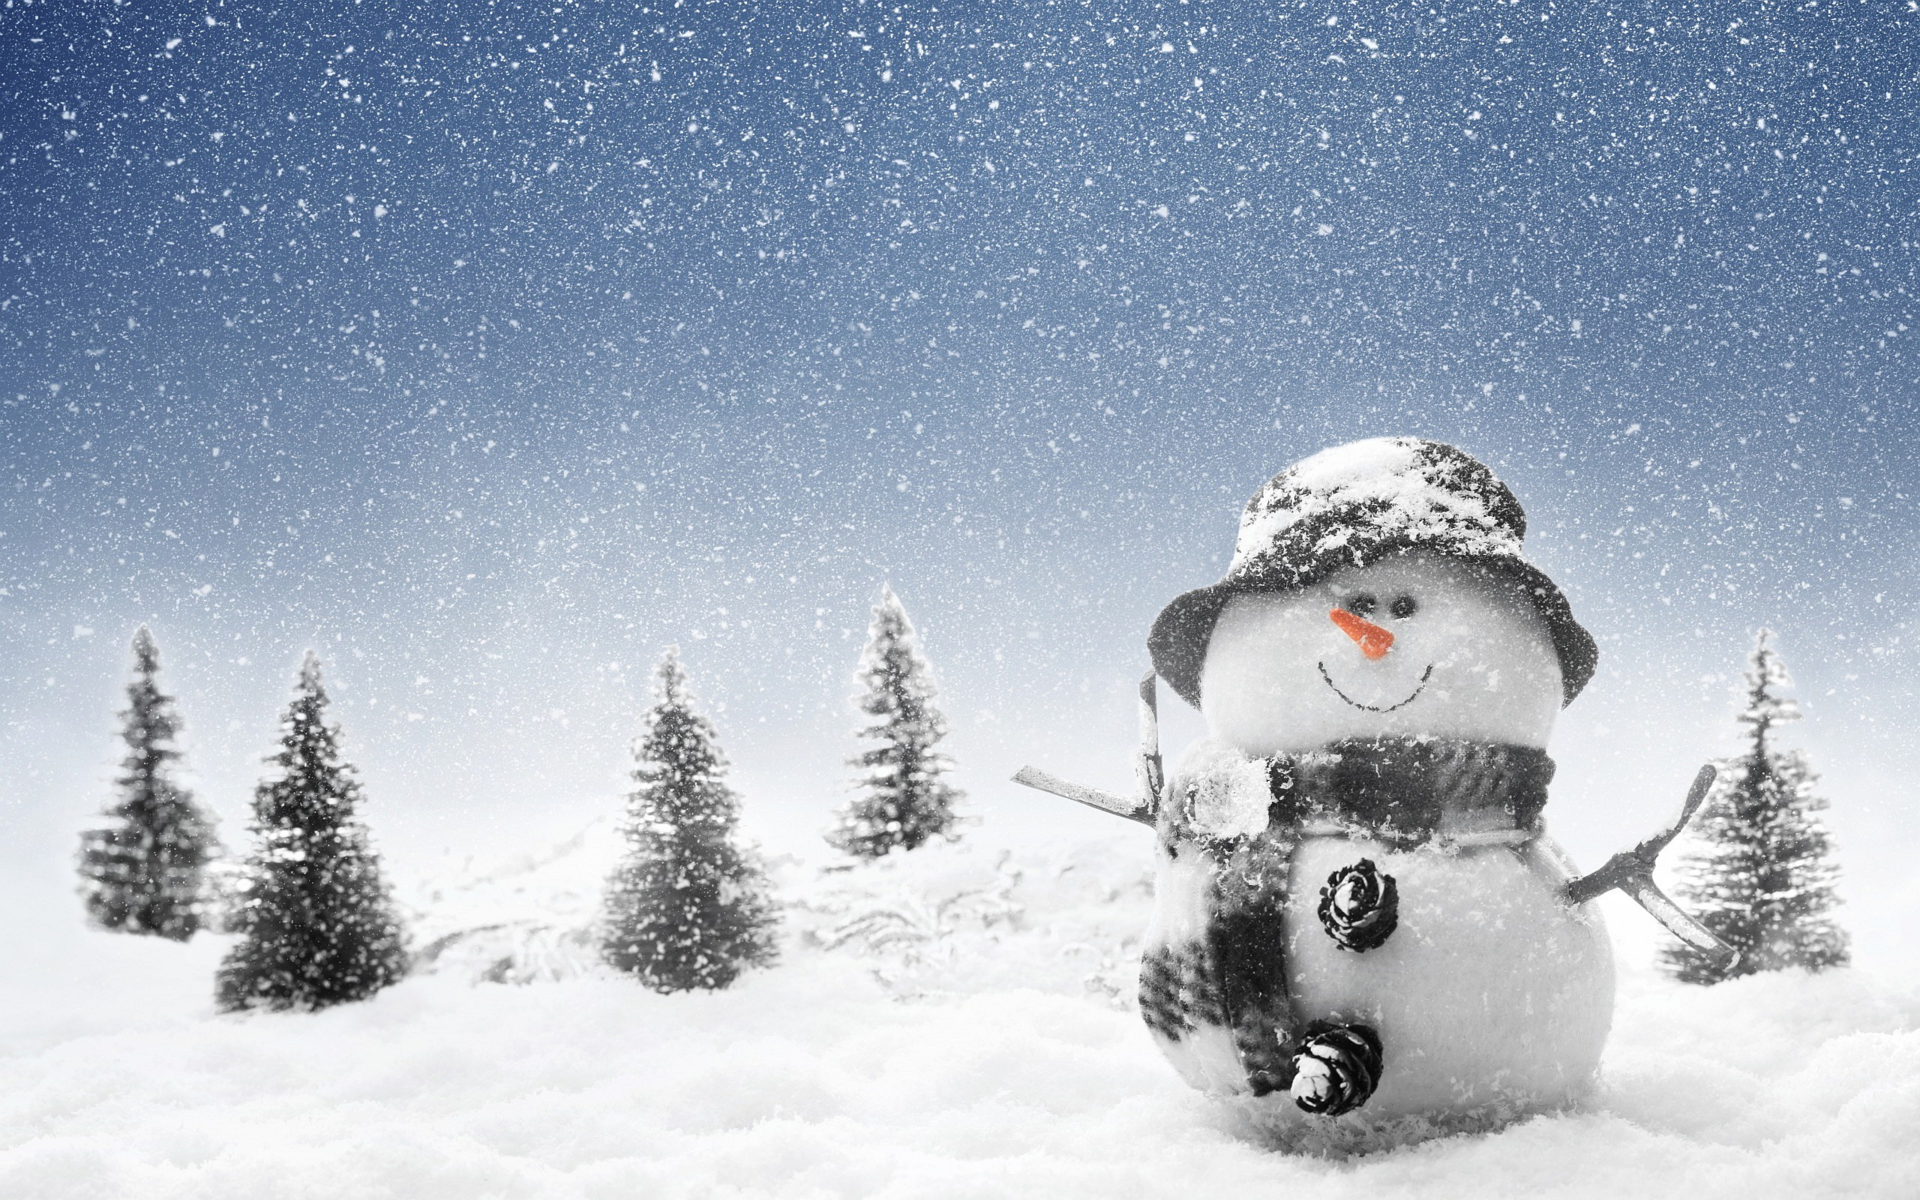 Snow_and_Snowman